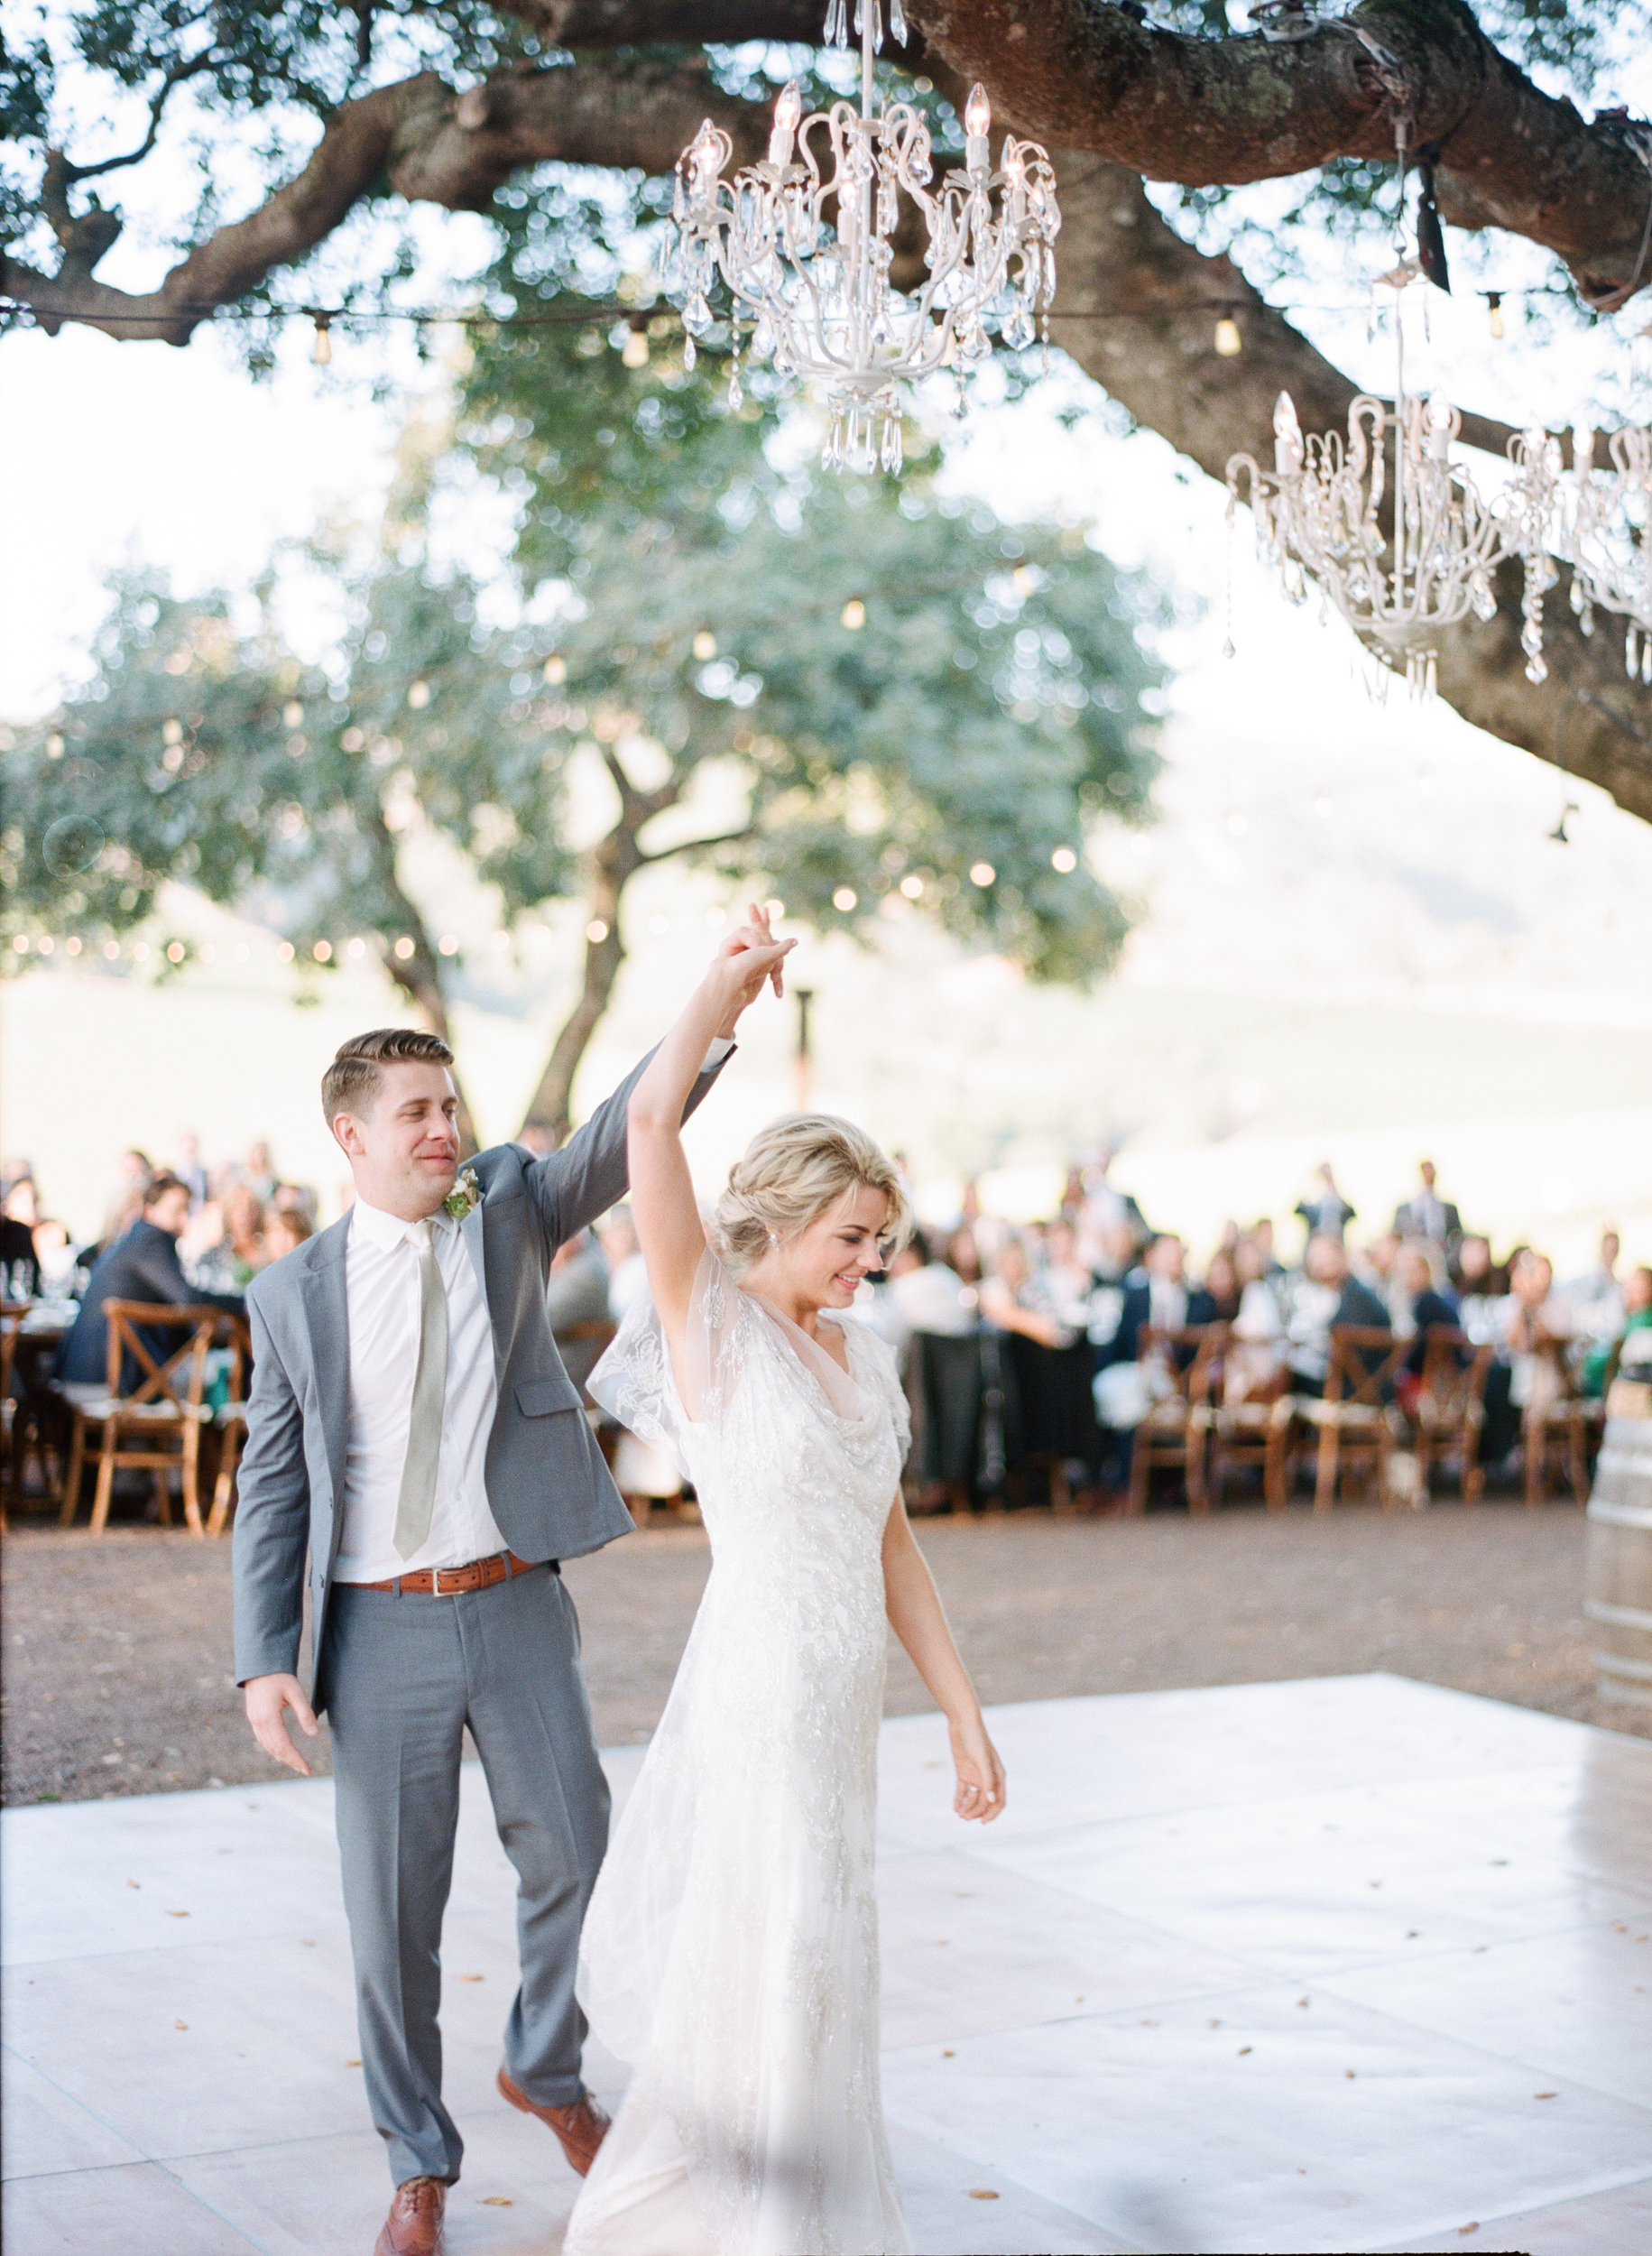 Sylvie-Gil-film-destination-photography-Kunde-winery-Napa-Valley-elegant-shabby-chic-reception-first-dance-chandeliers-oak-trees